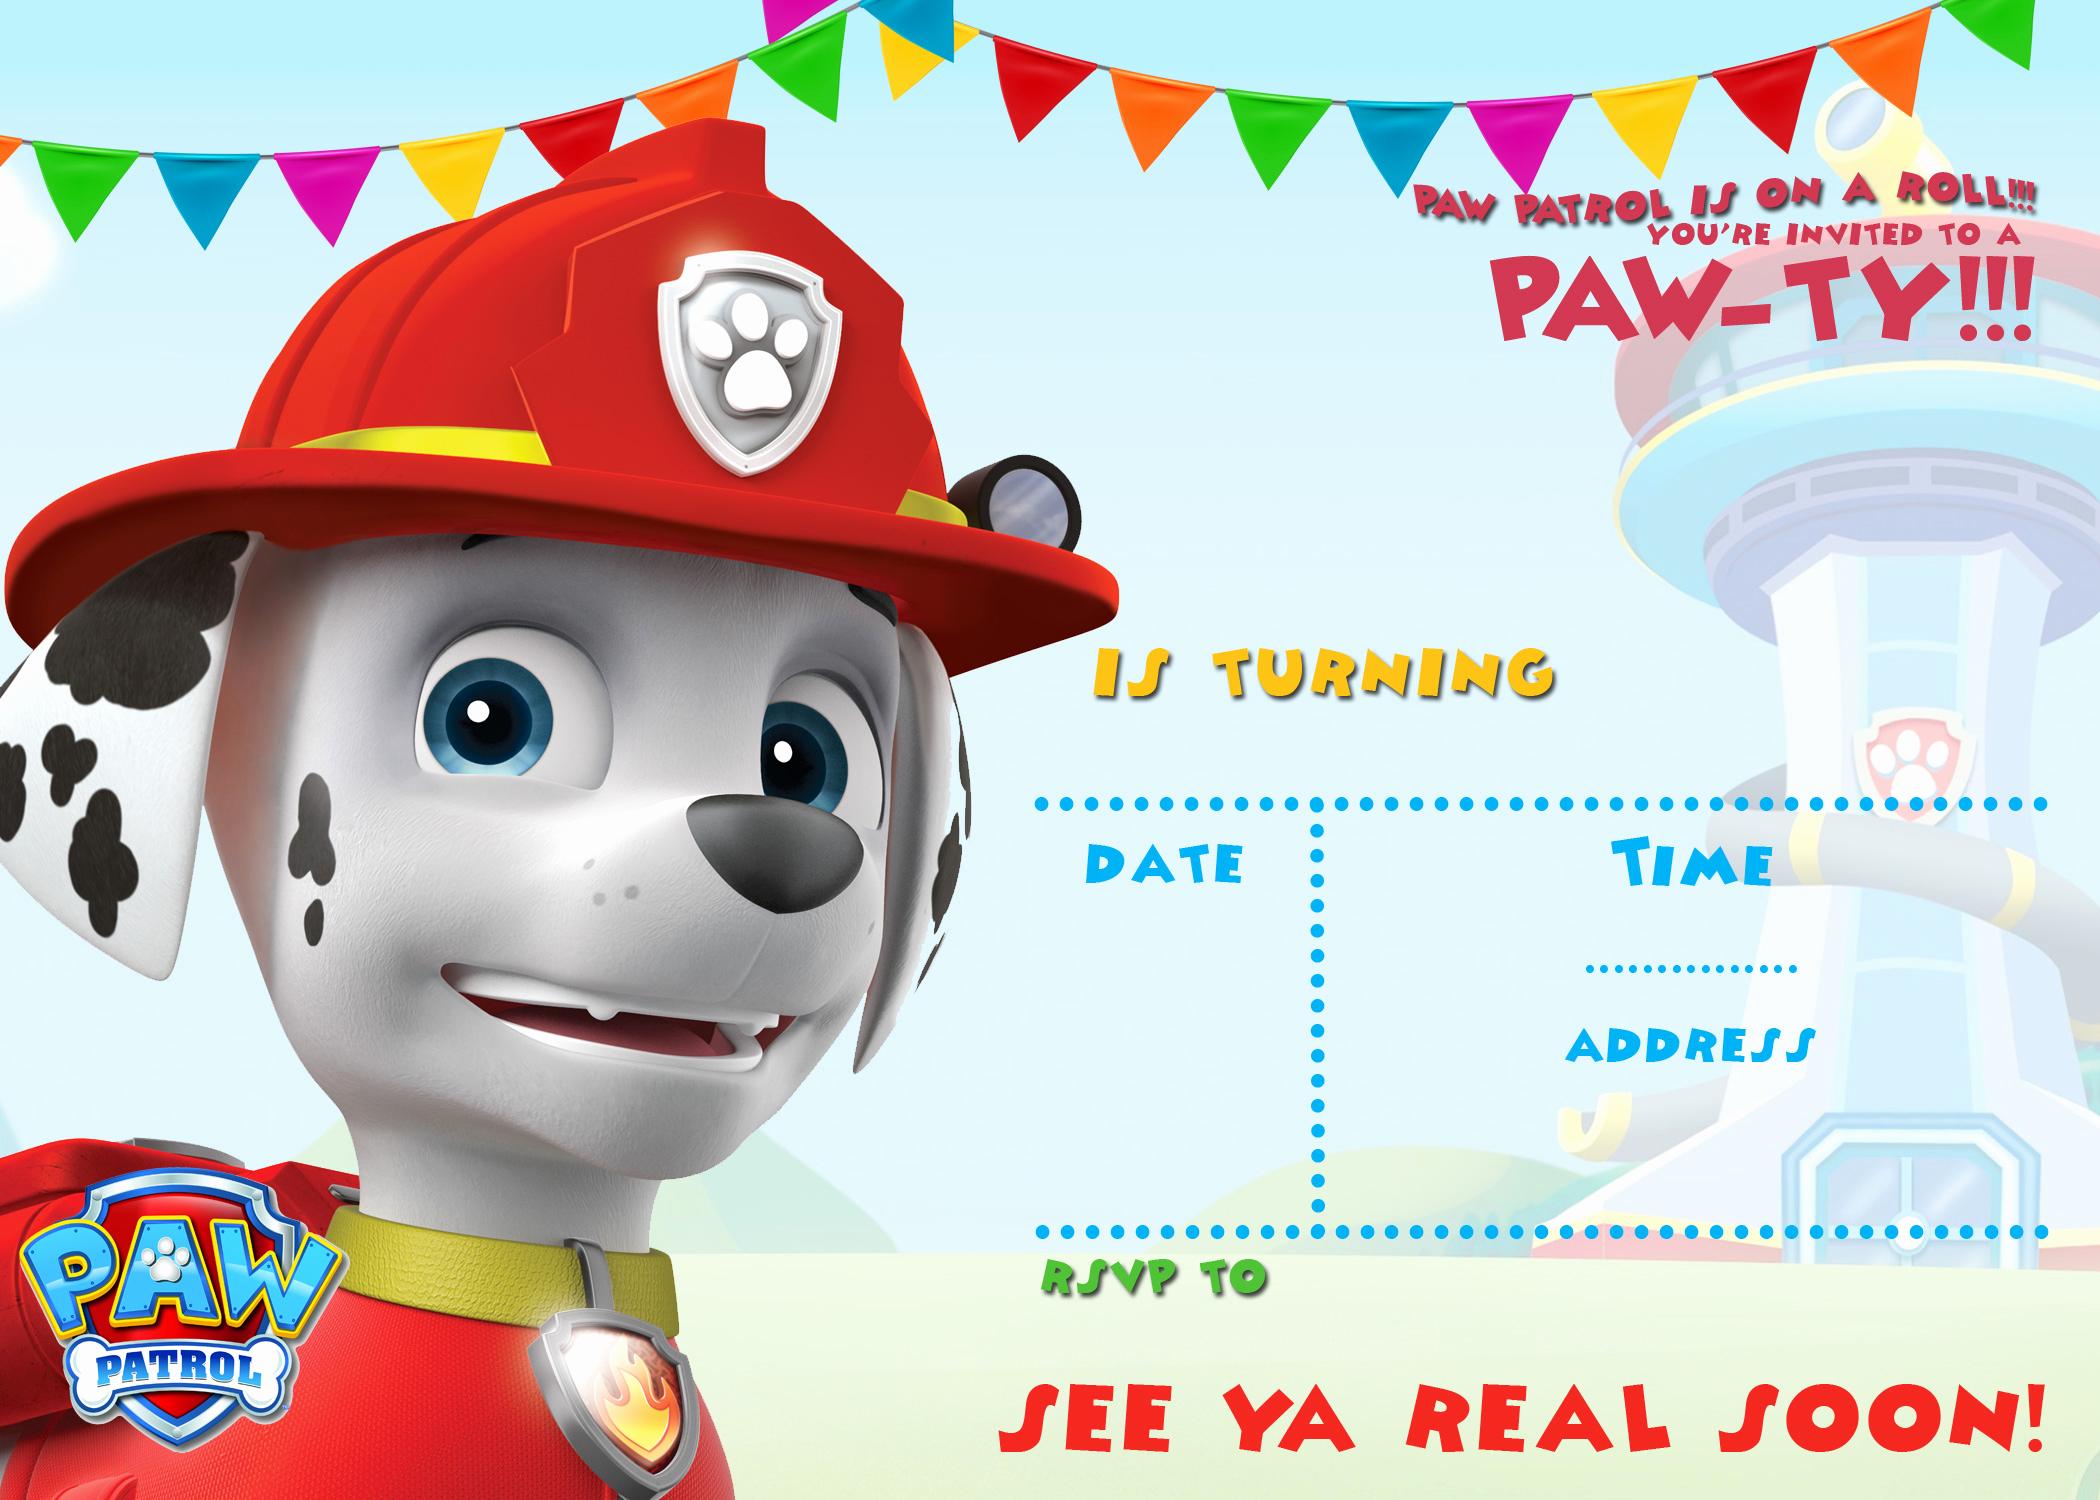 Paw Patrol Party Invitation Template Fresh Free Printable Paw Patrol Birthday Invitation Ideas